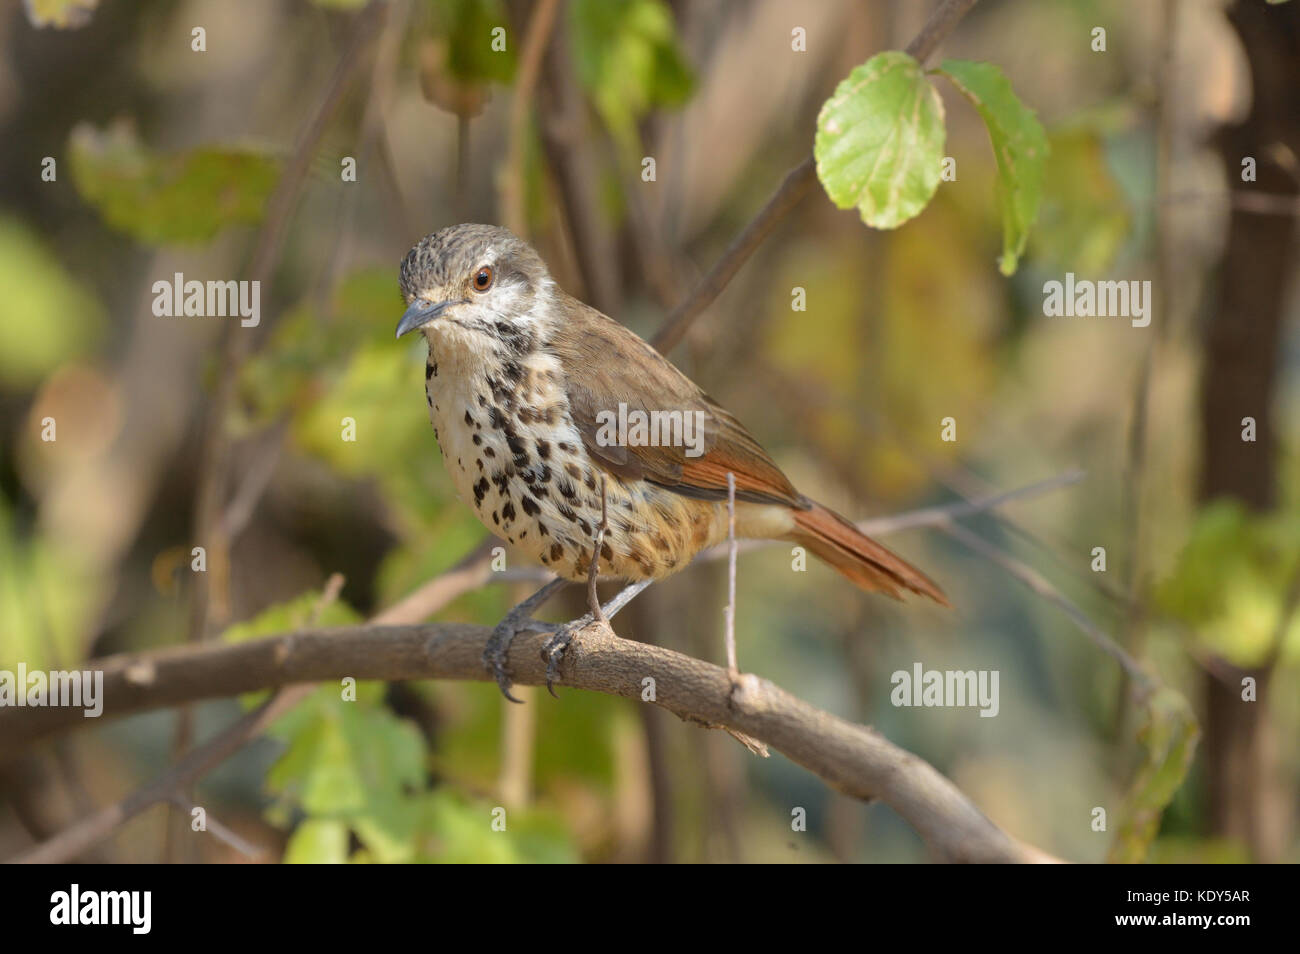 Spotted Morning Thrush perched on branch - Stock Image